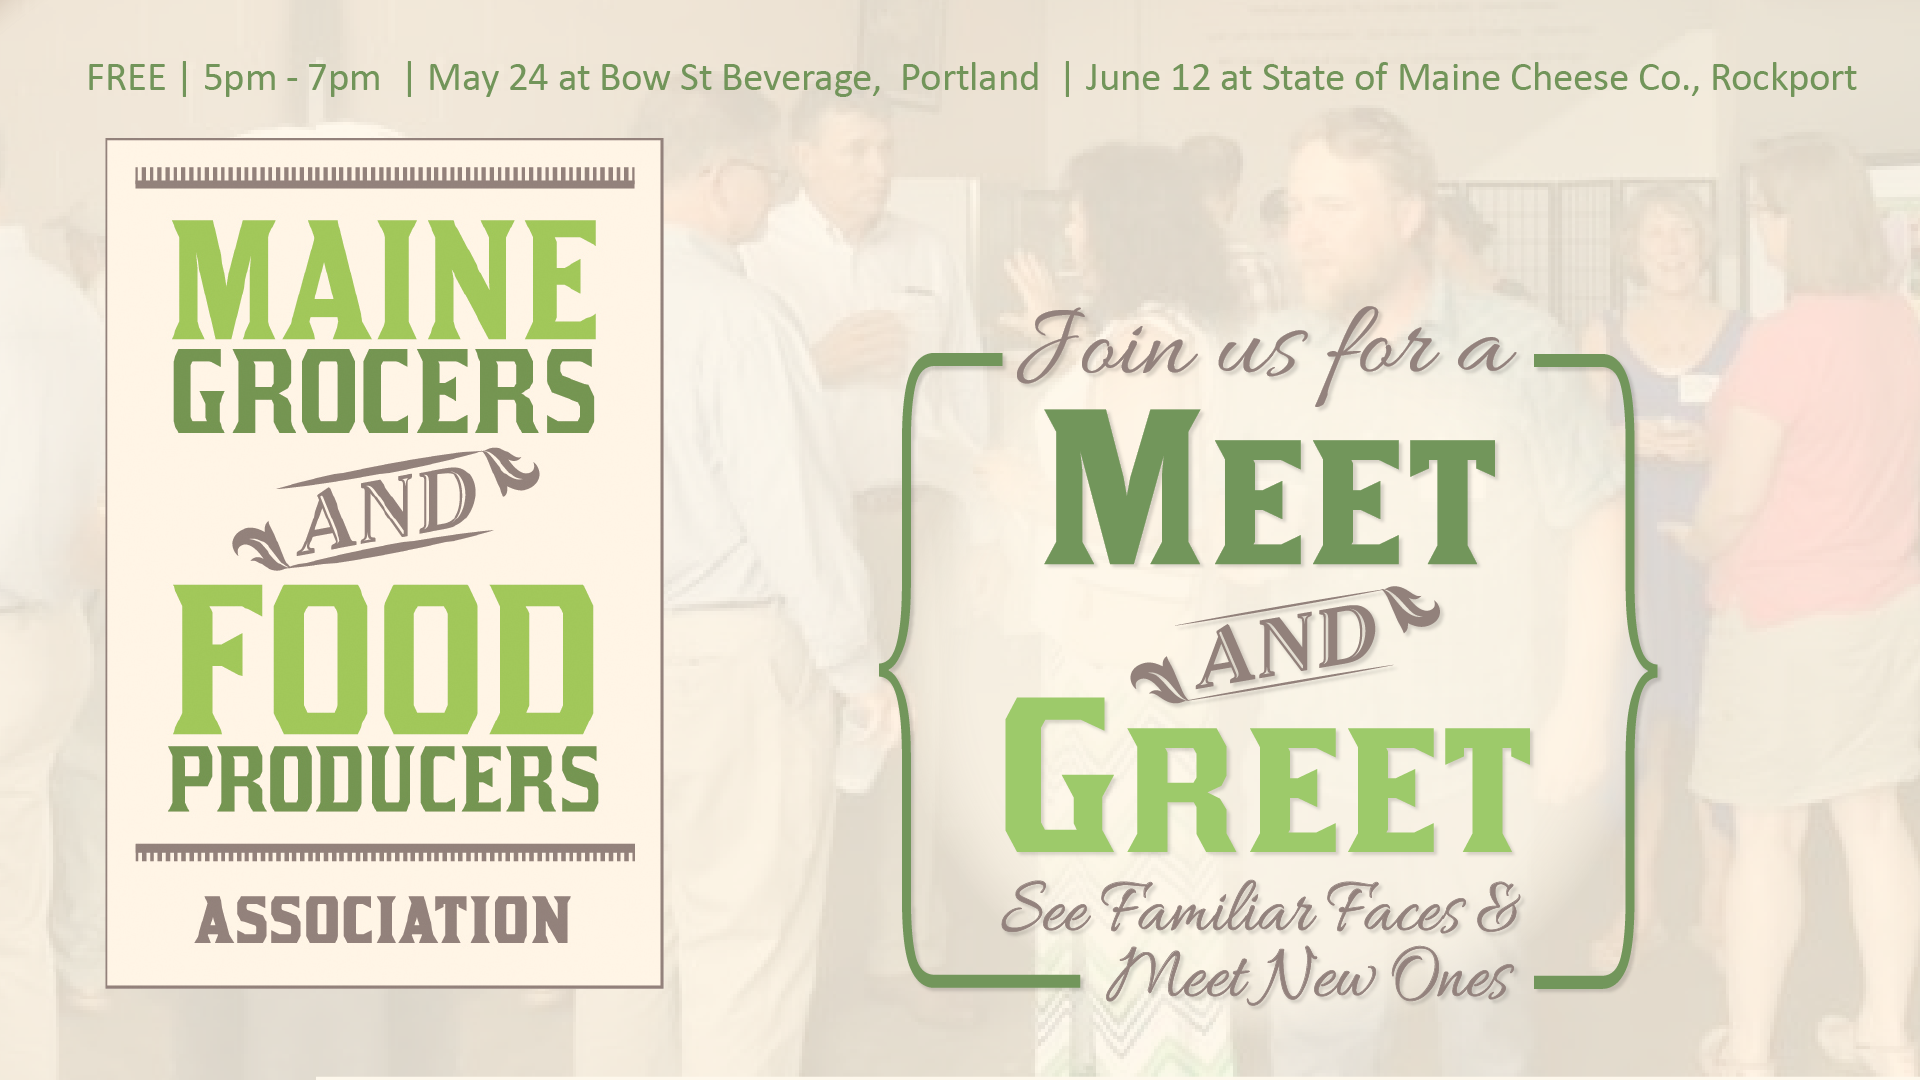 Spring summer meet greets maine grocers and food producers may 24th please join the maine grocers food producers association at bow street beverages tasting room in portland for our spring meet greet m4hsunfo